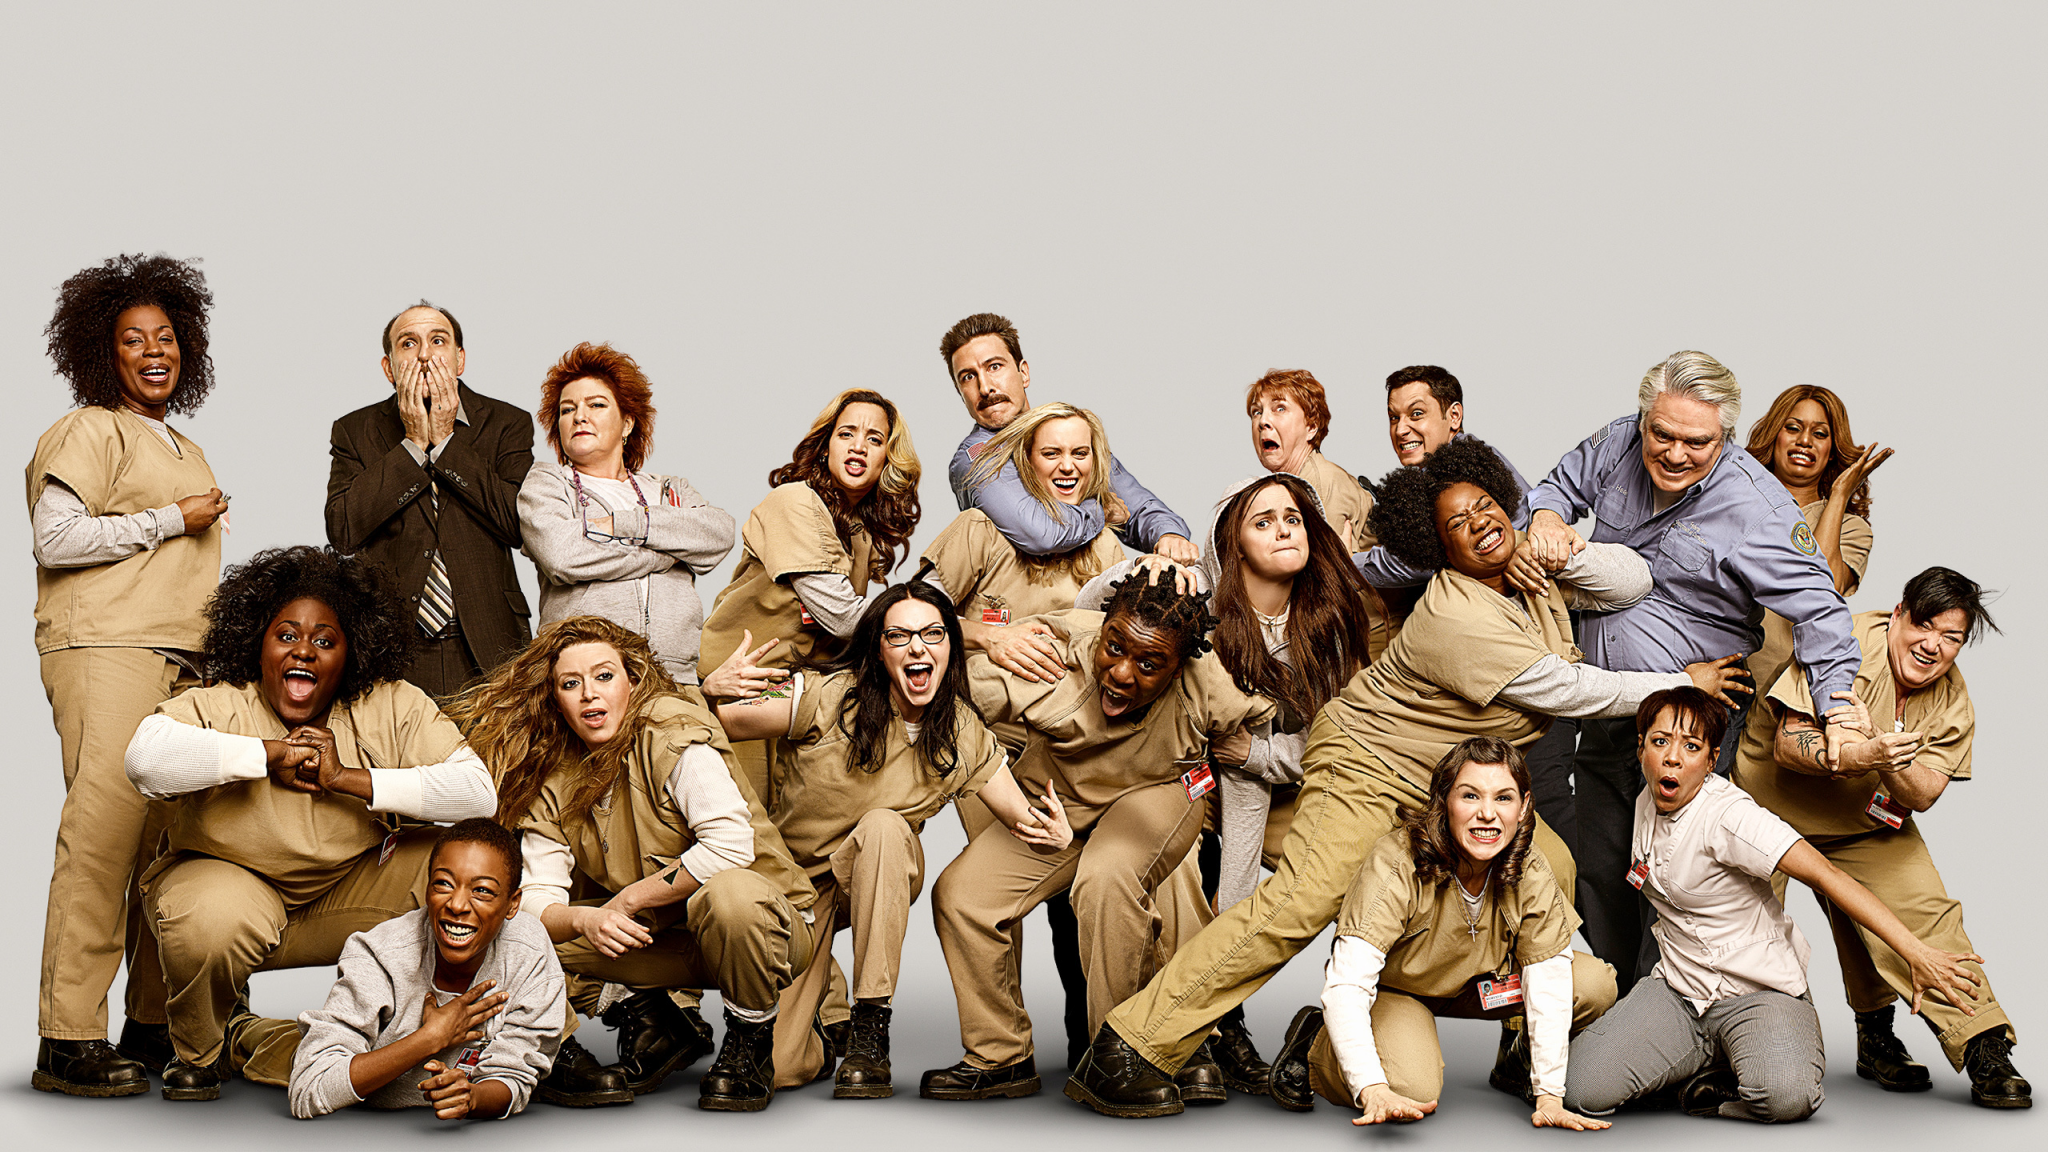 Orange is the new black serie netflix curiosidades